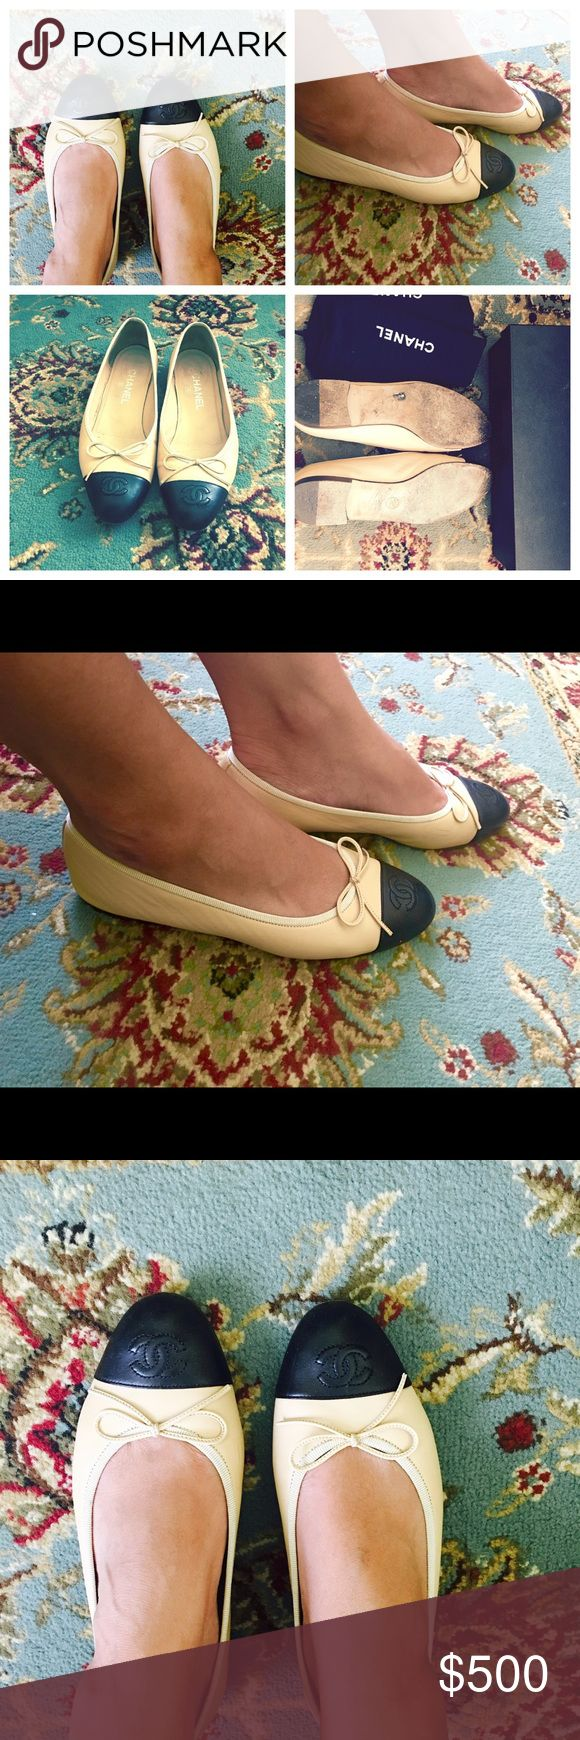 Authentic Chanel flats Purchased last year from Neiman Marcus Gentle wear! Chanel Shoes Flats & Loafers